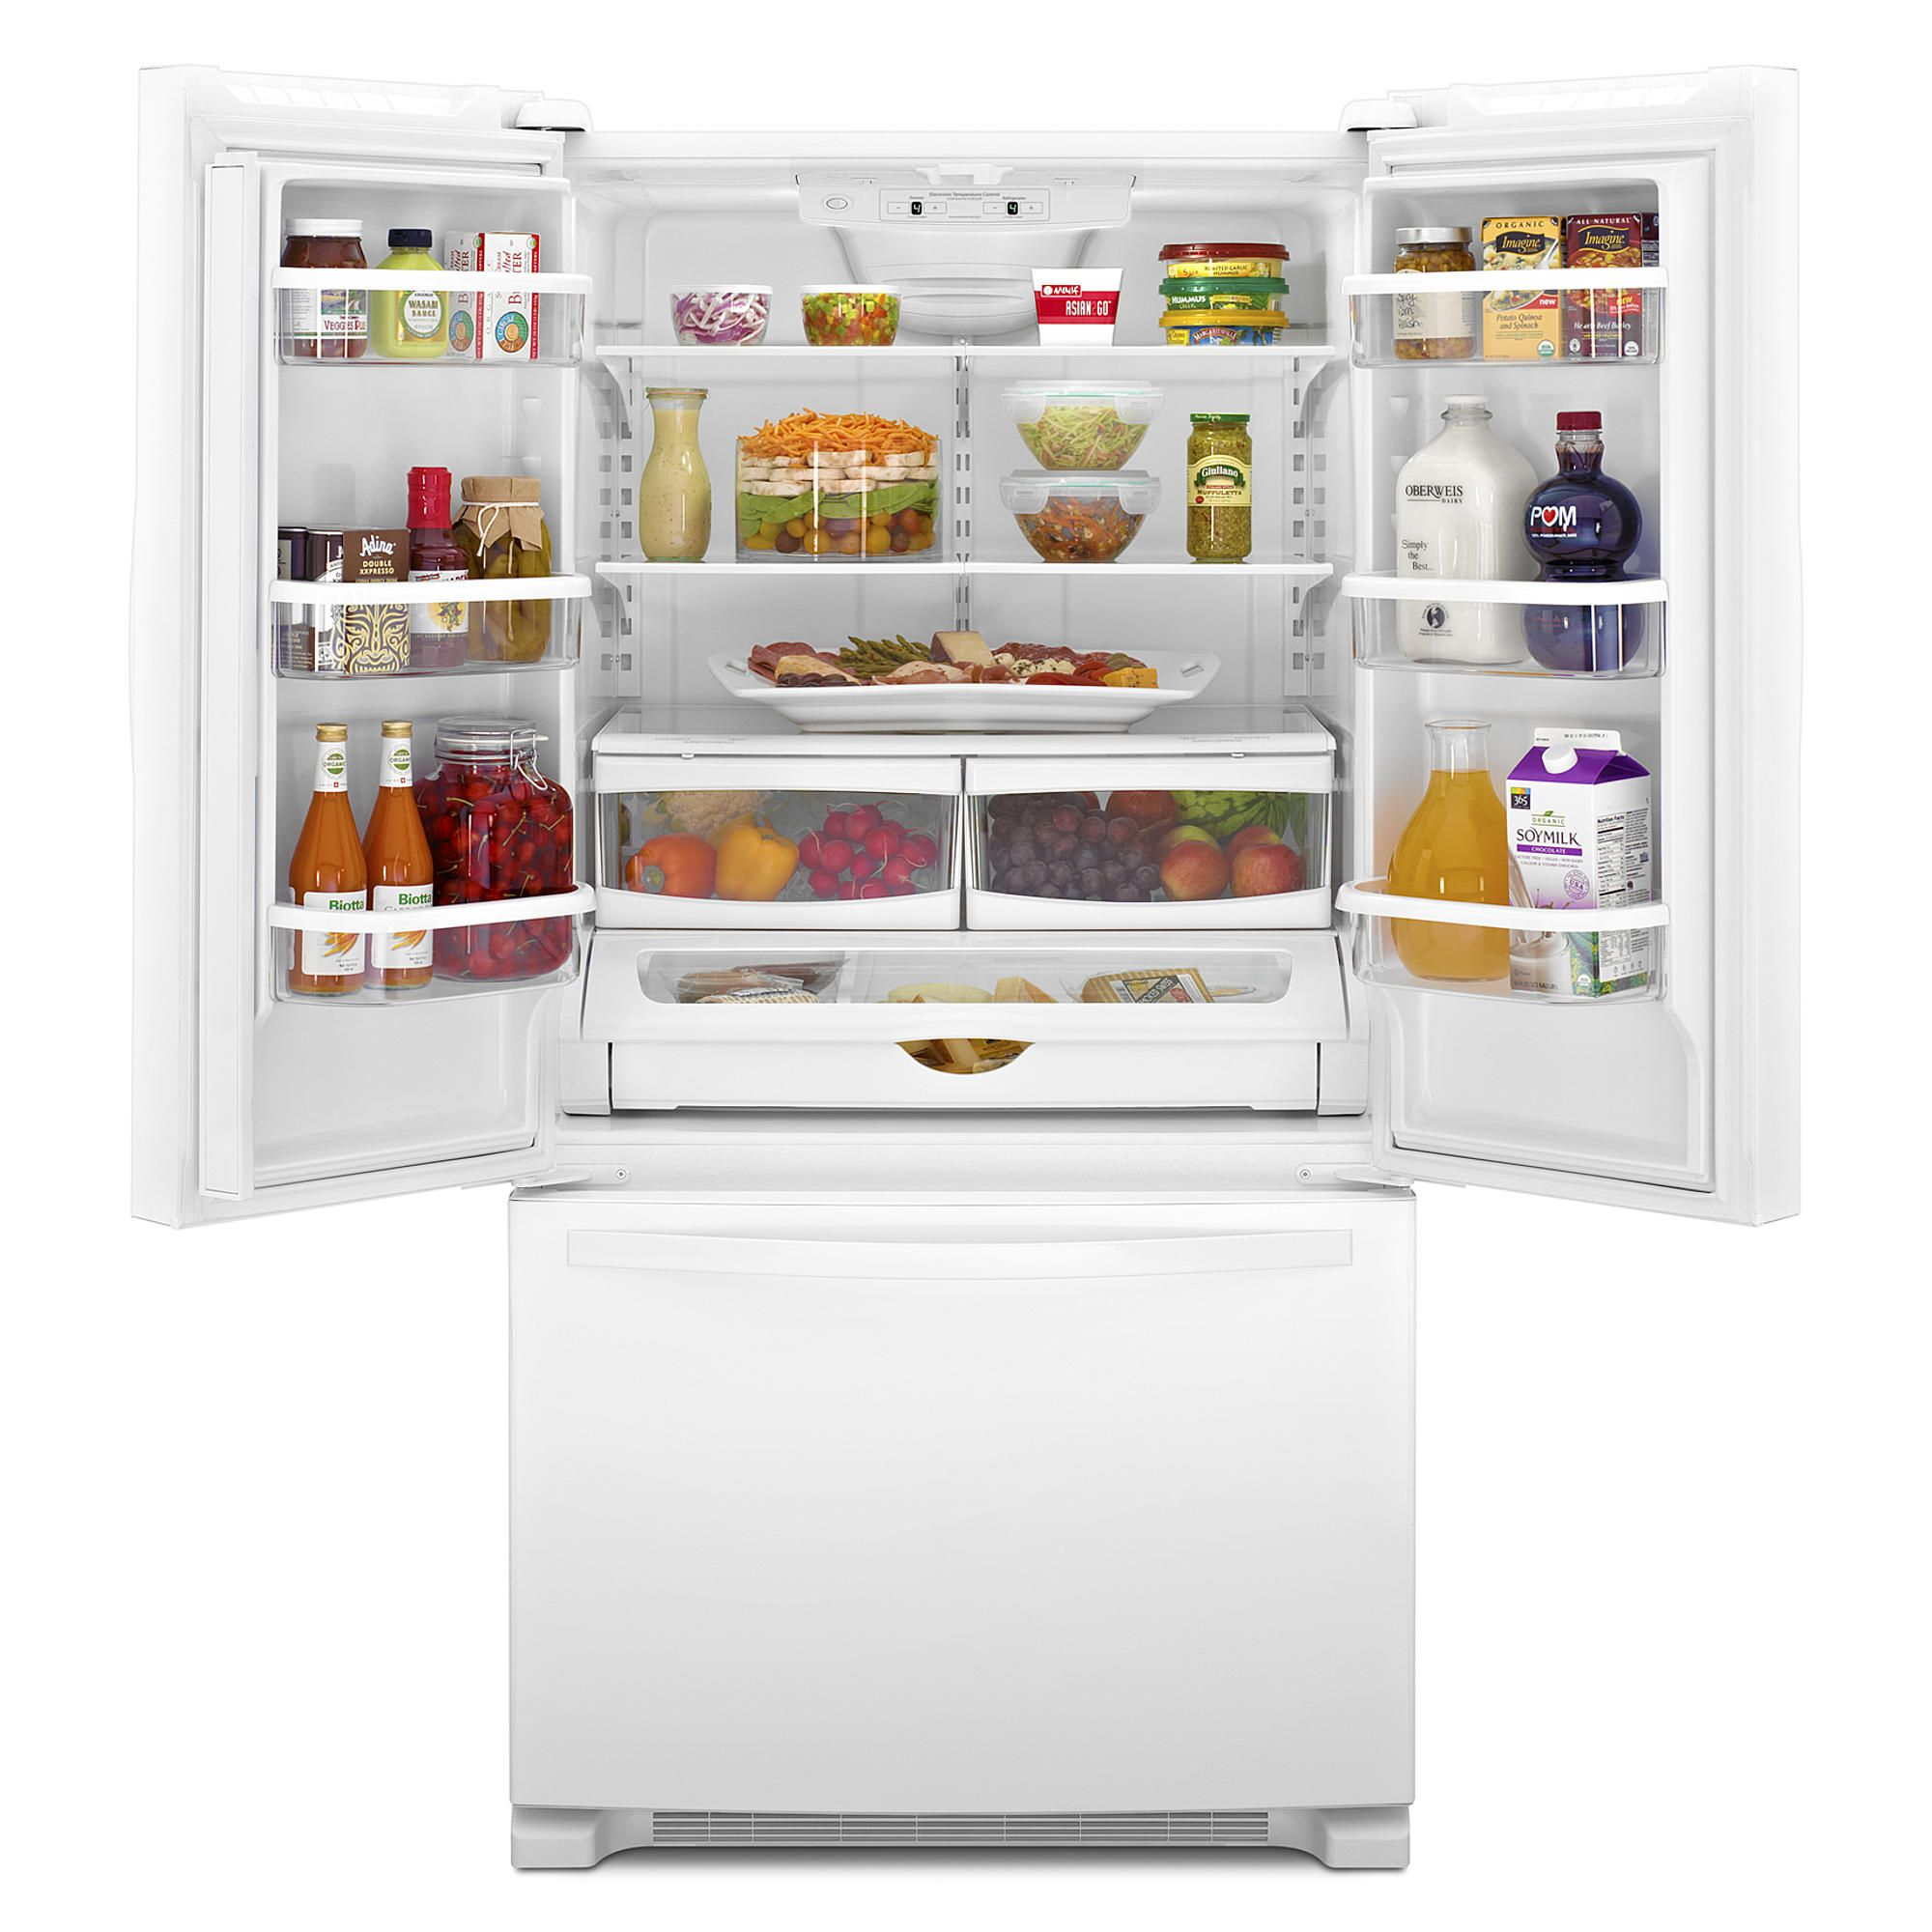 Whirlpool Wrf535smbw 25 Cu Ft French Door Refrigerator White